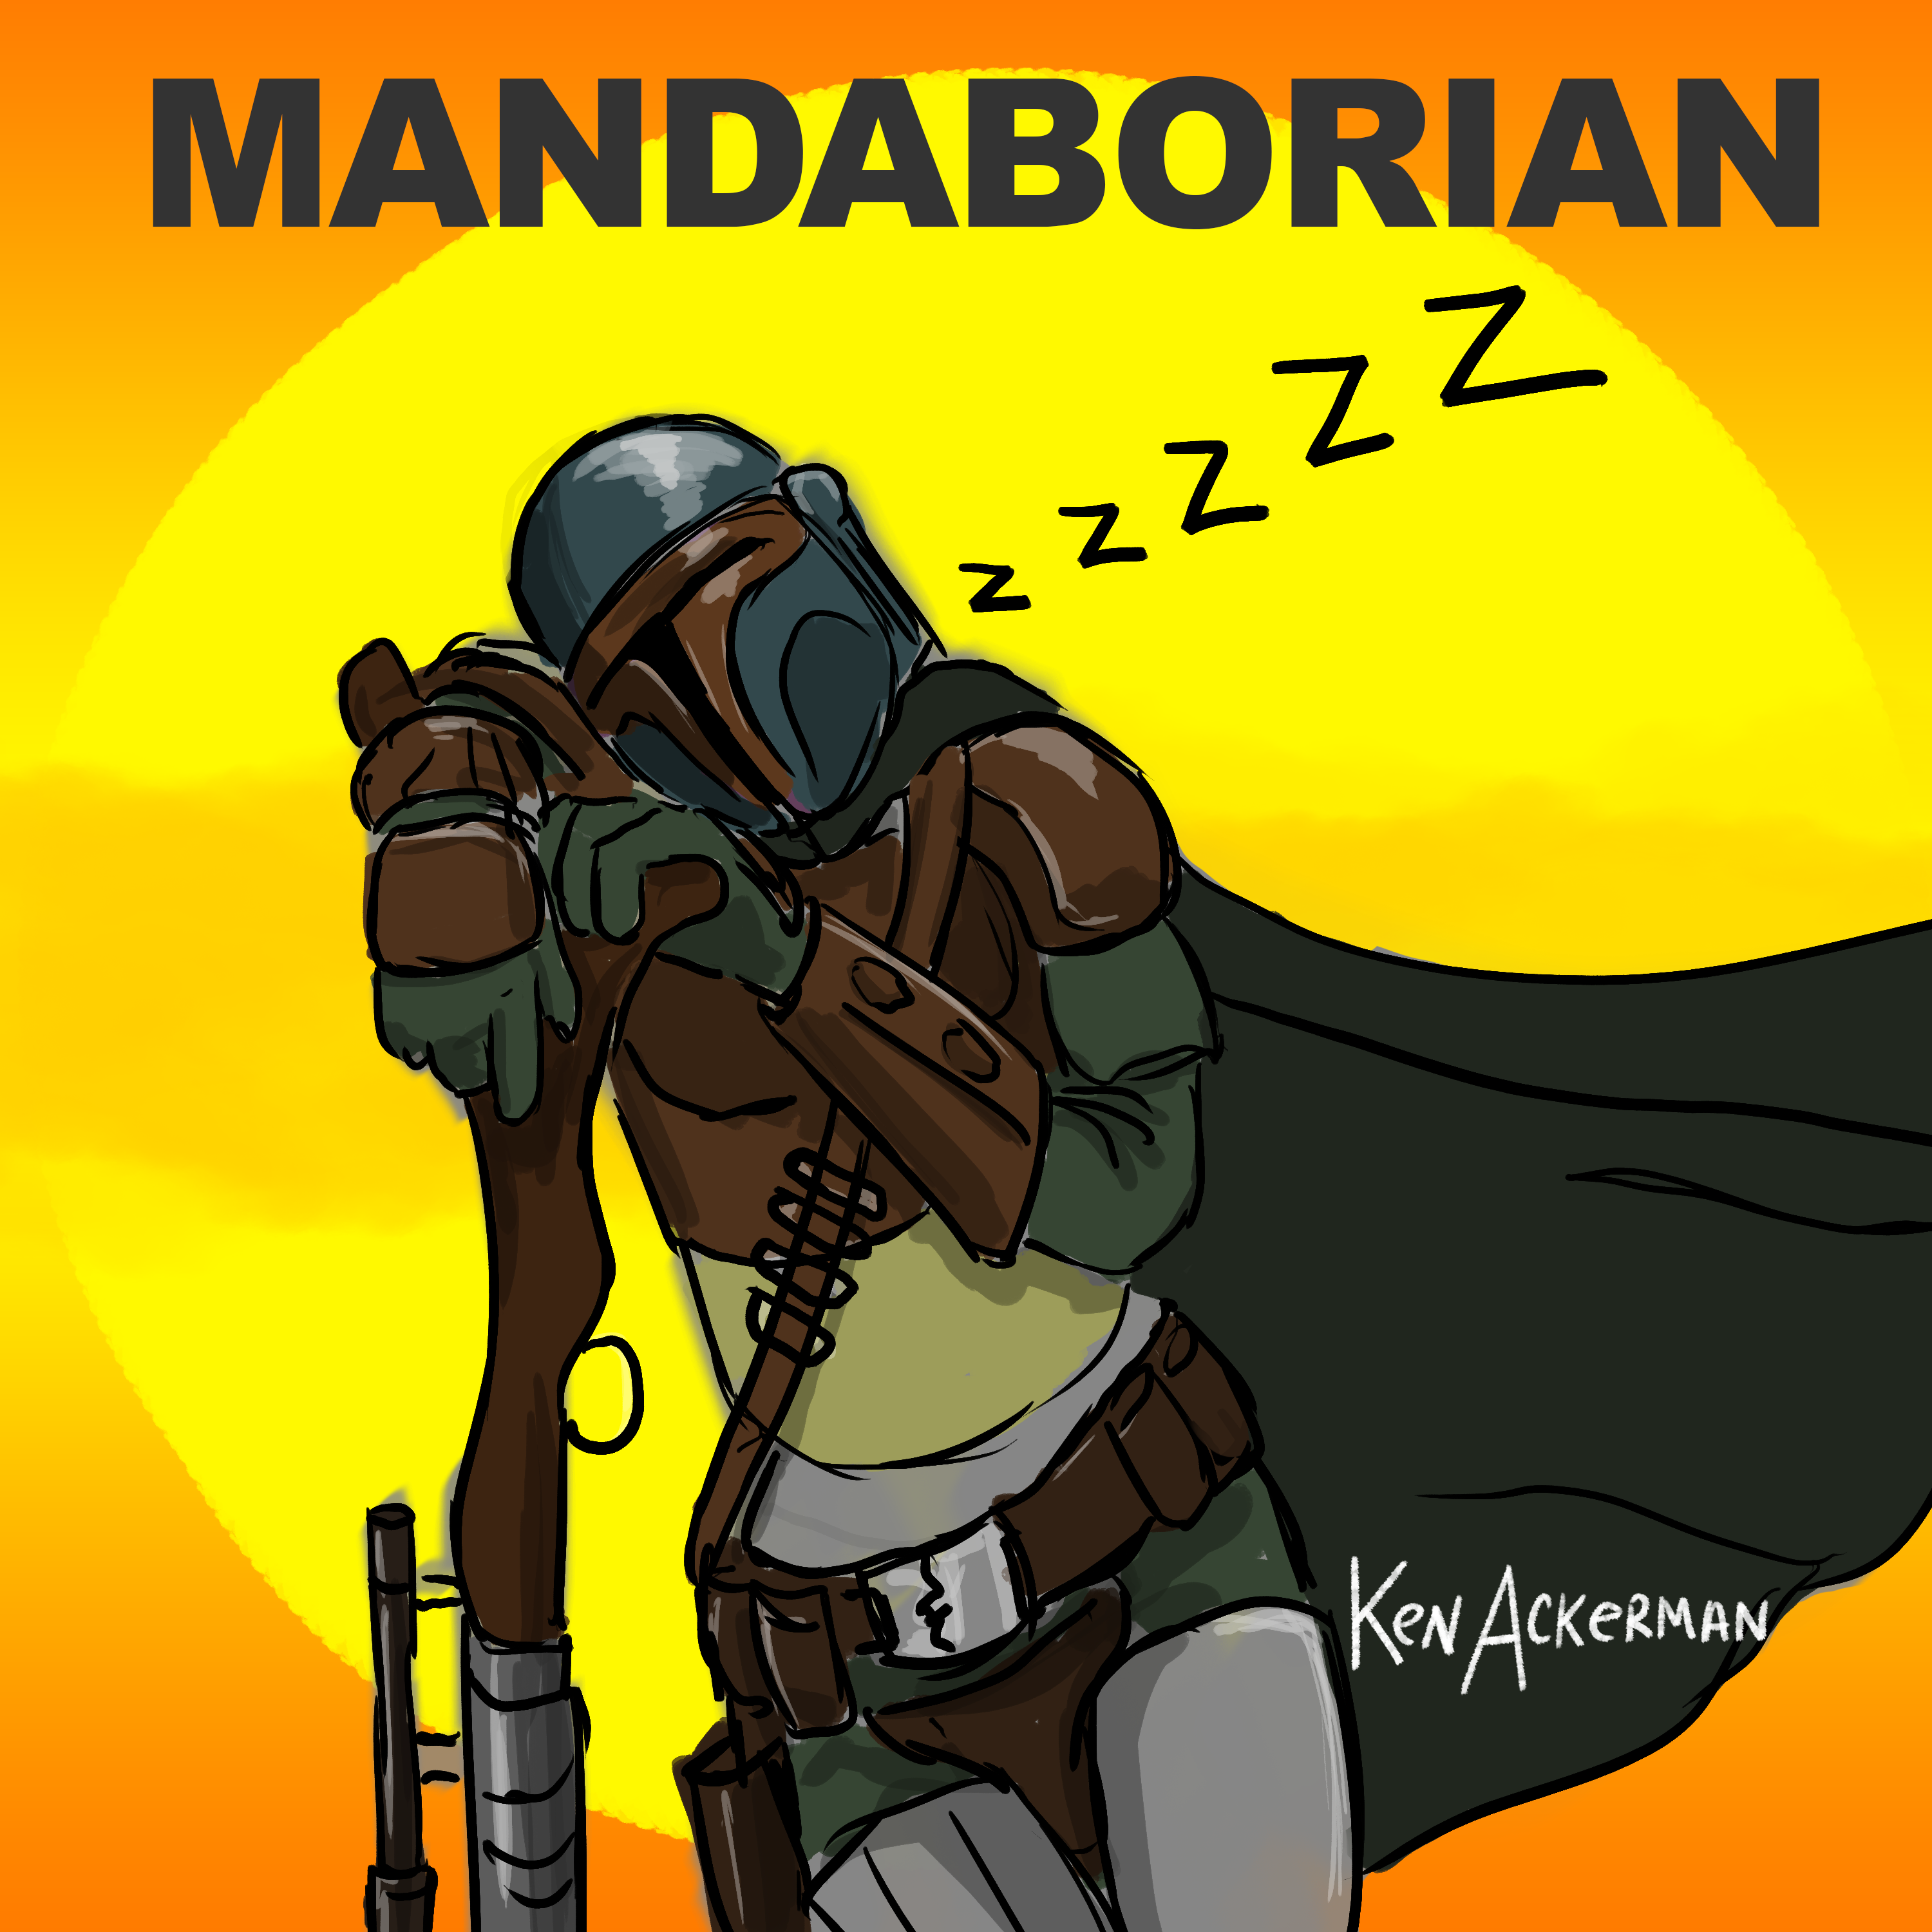 839 - The Son | Mandoborian on Mandolorian Ep 3